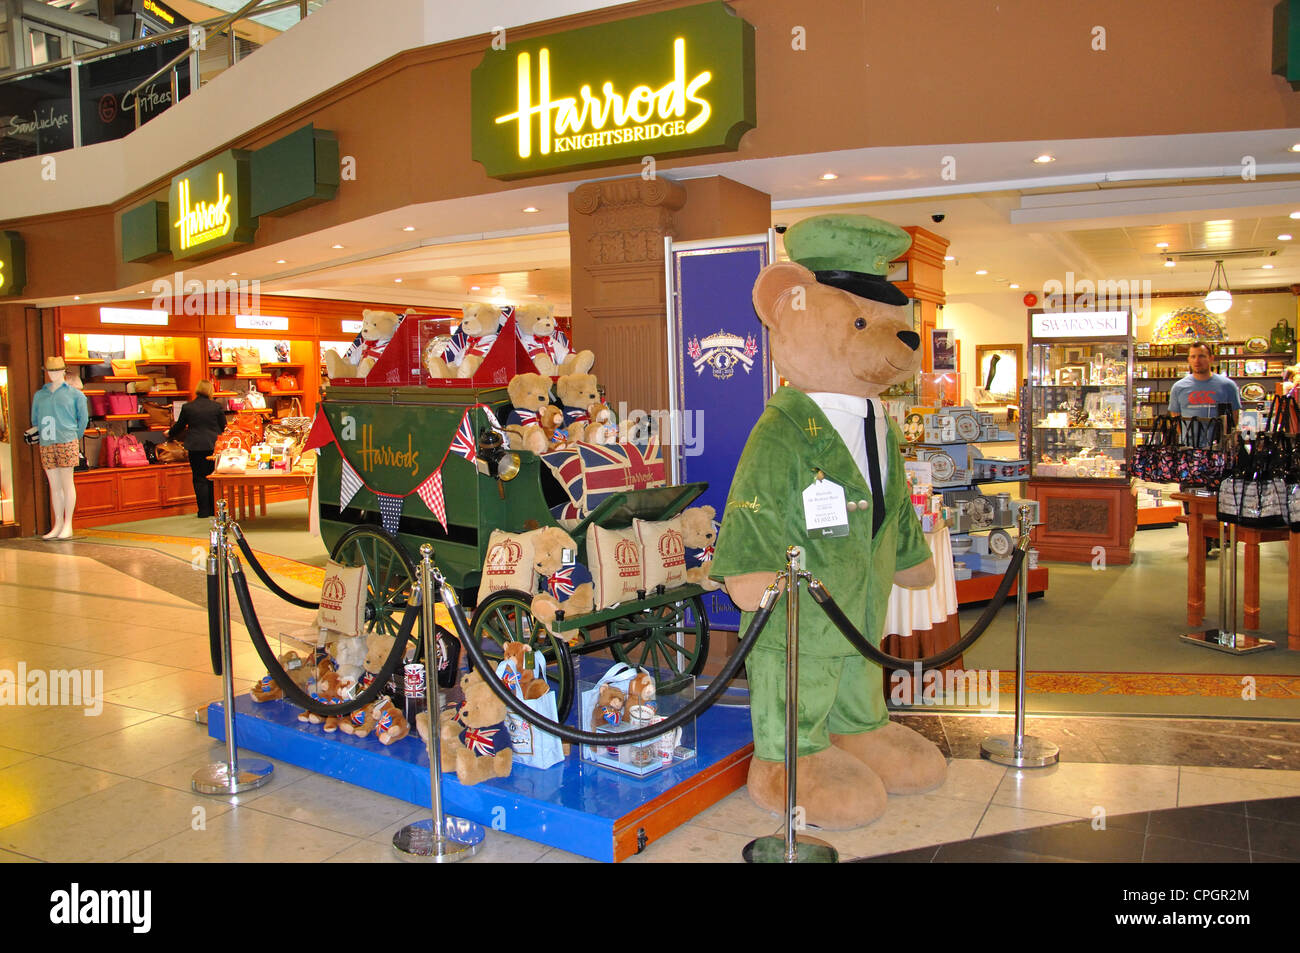 Harrods store at North Terminal, London Gatwick Airport, Crawley, West Sussex, England, United Kingdom - Stock Image